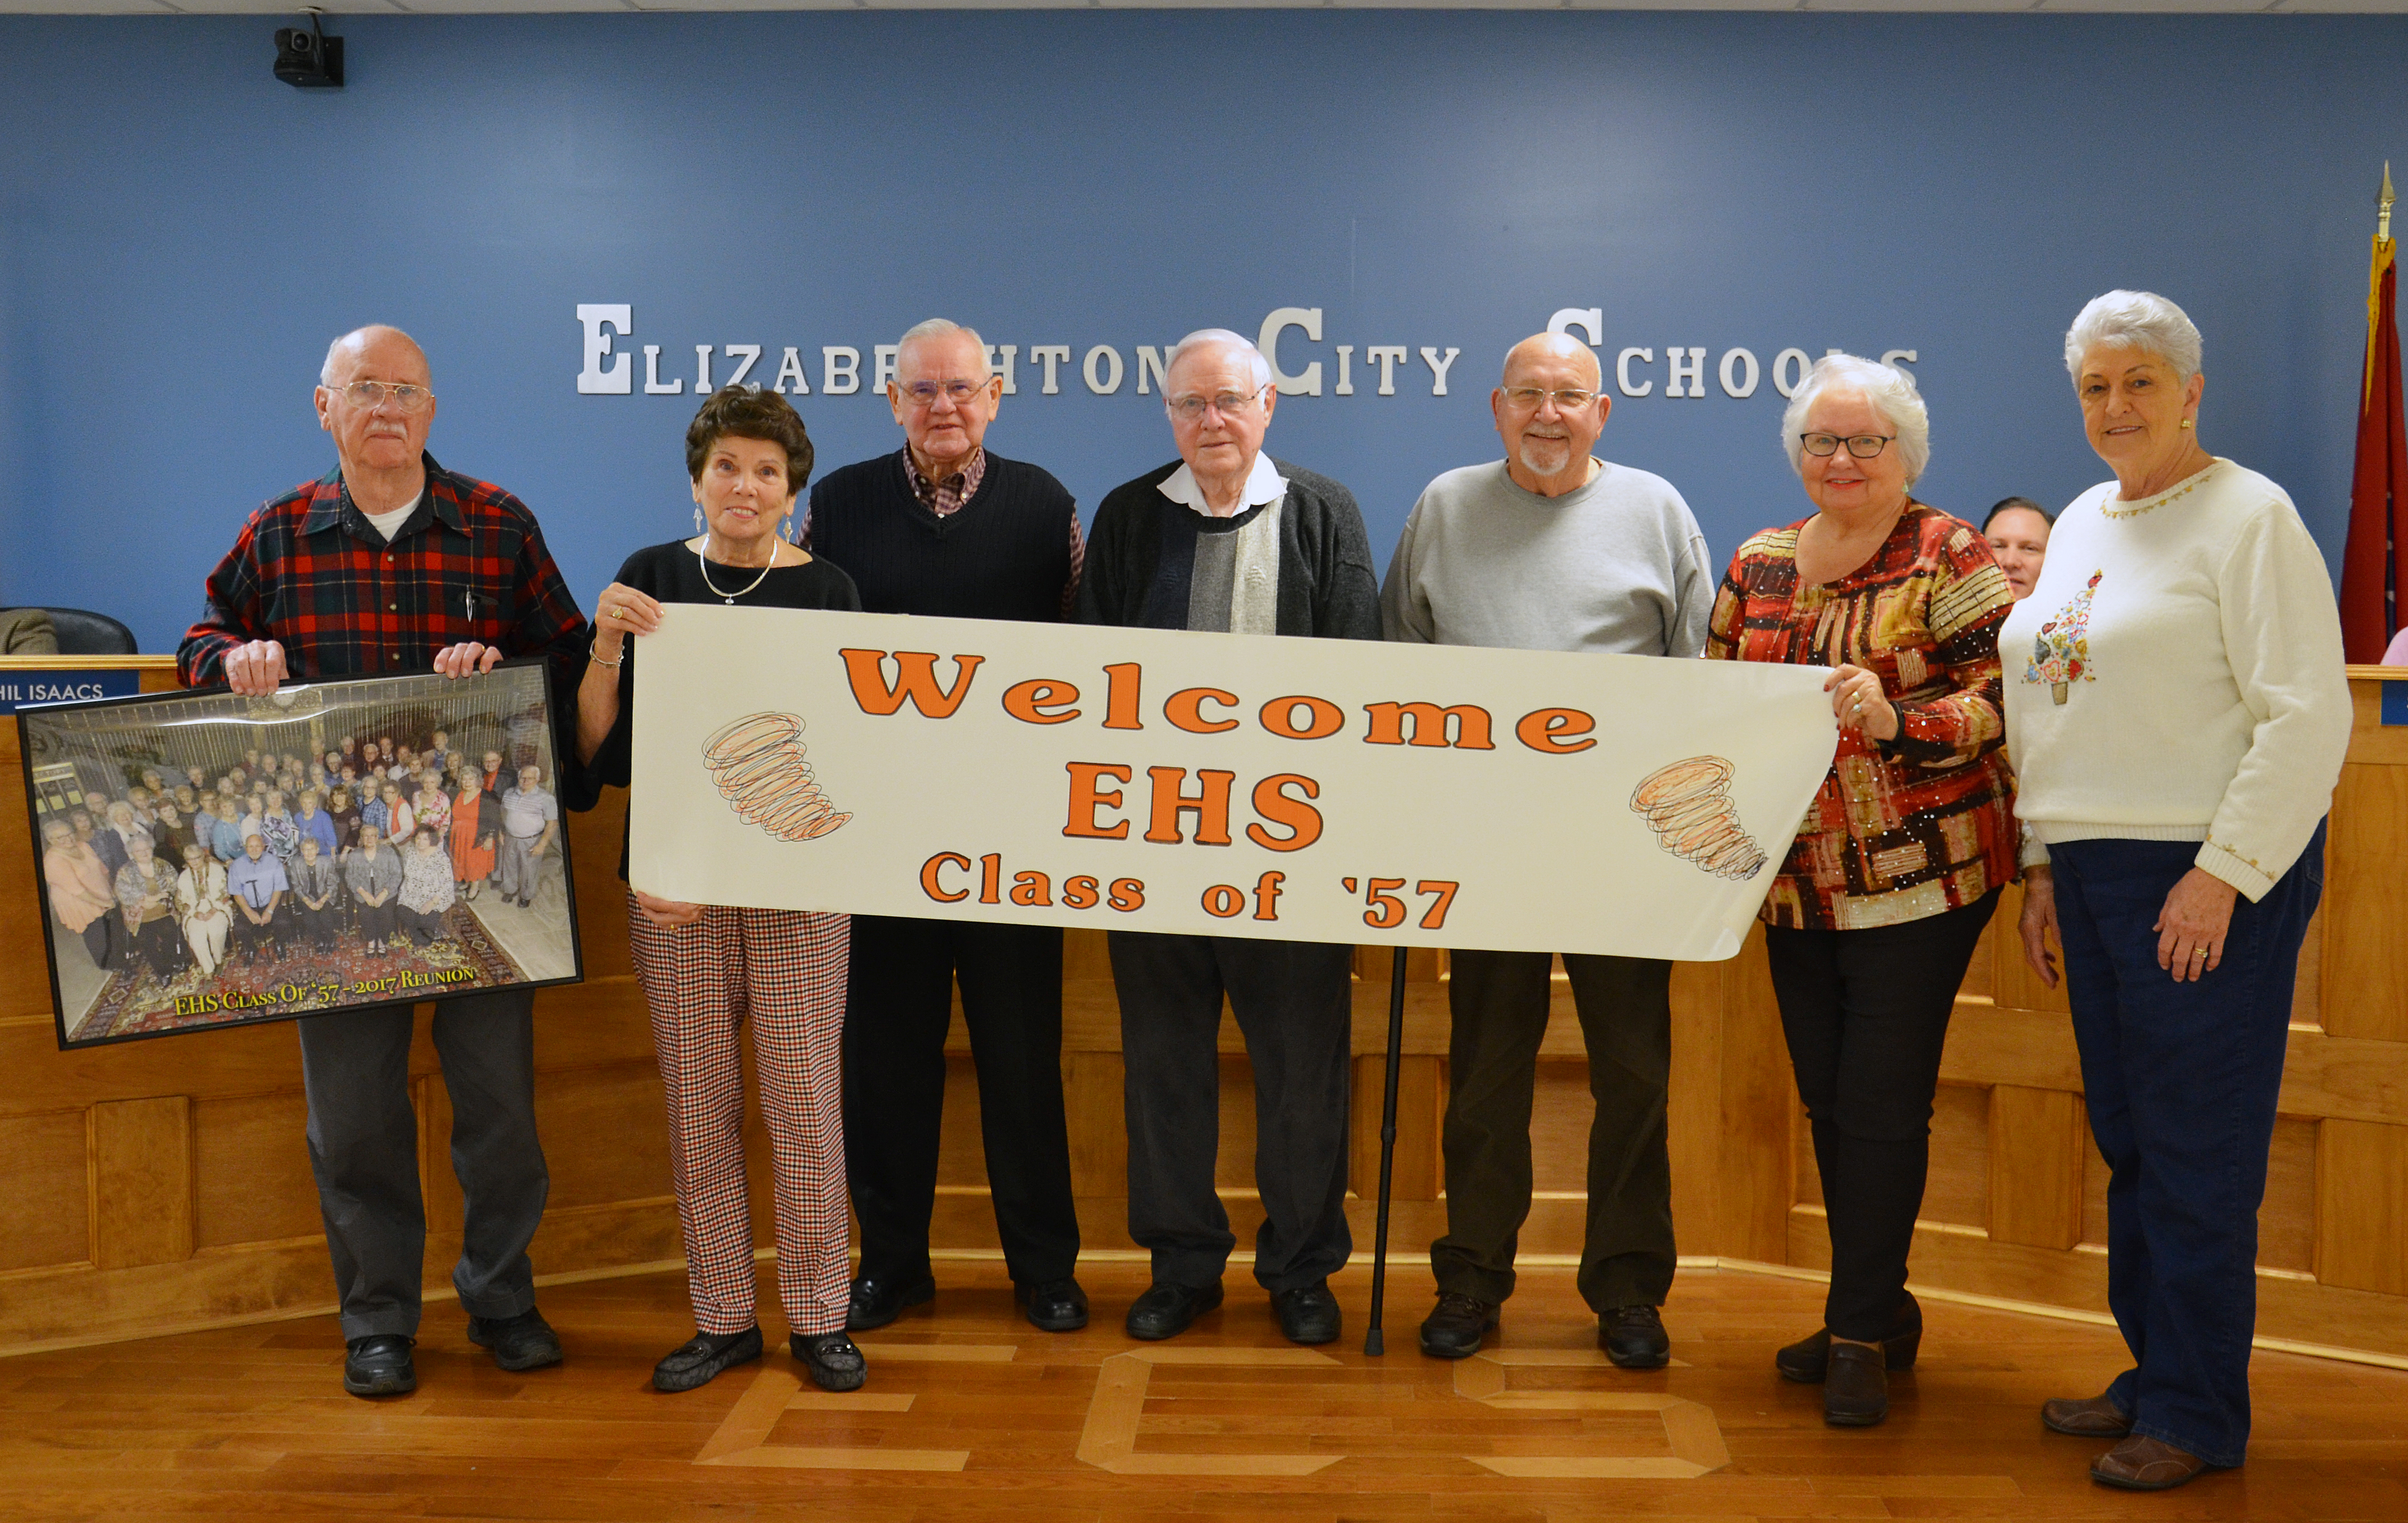 Members of Class of 1957